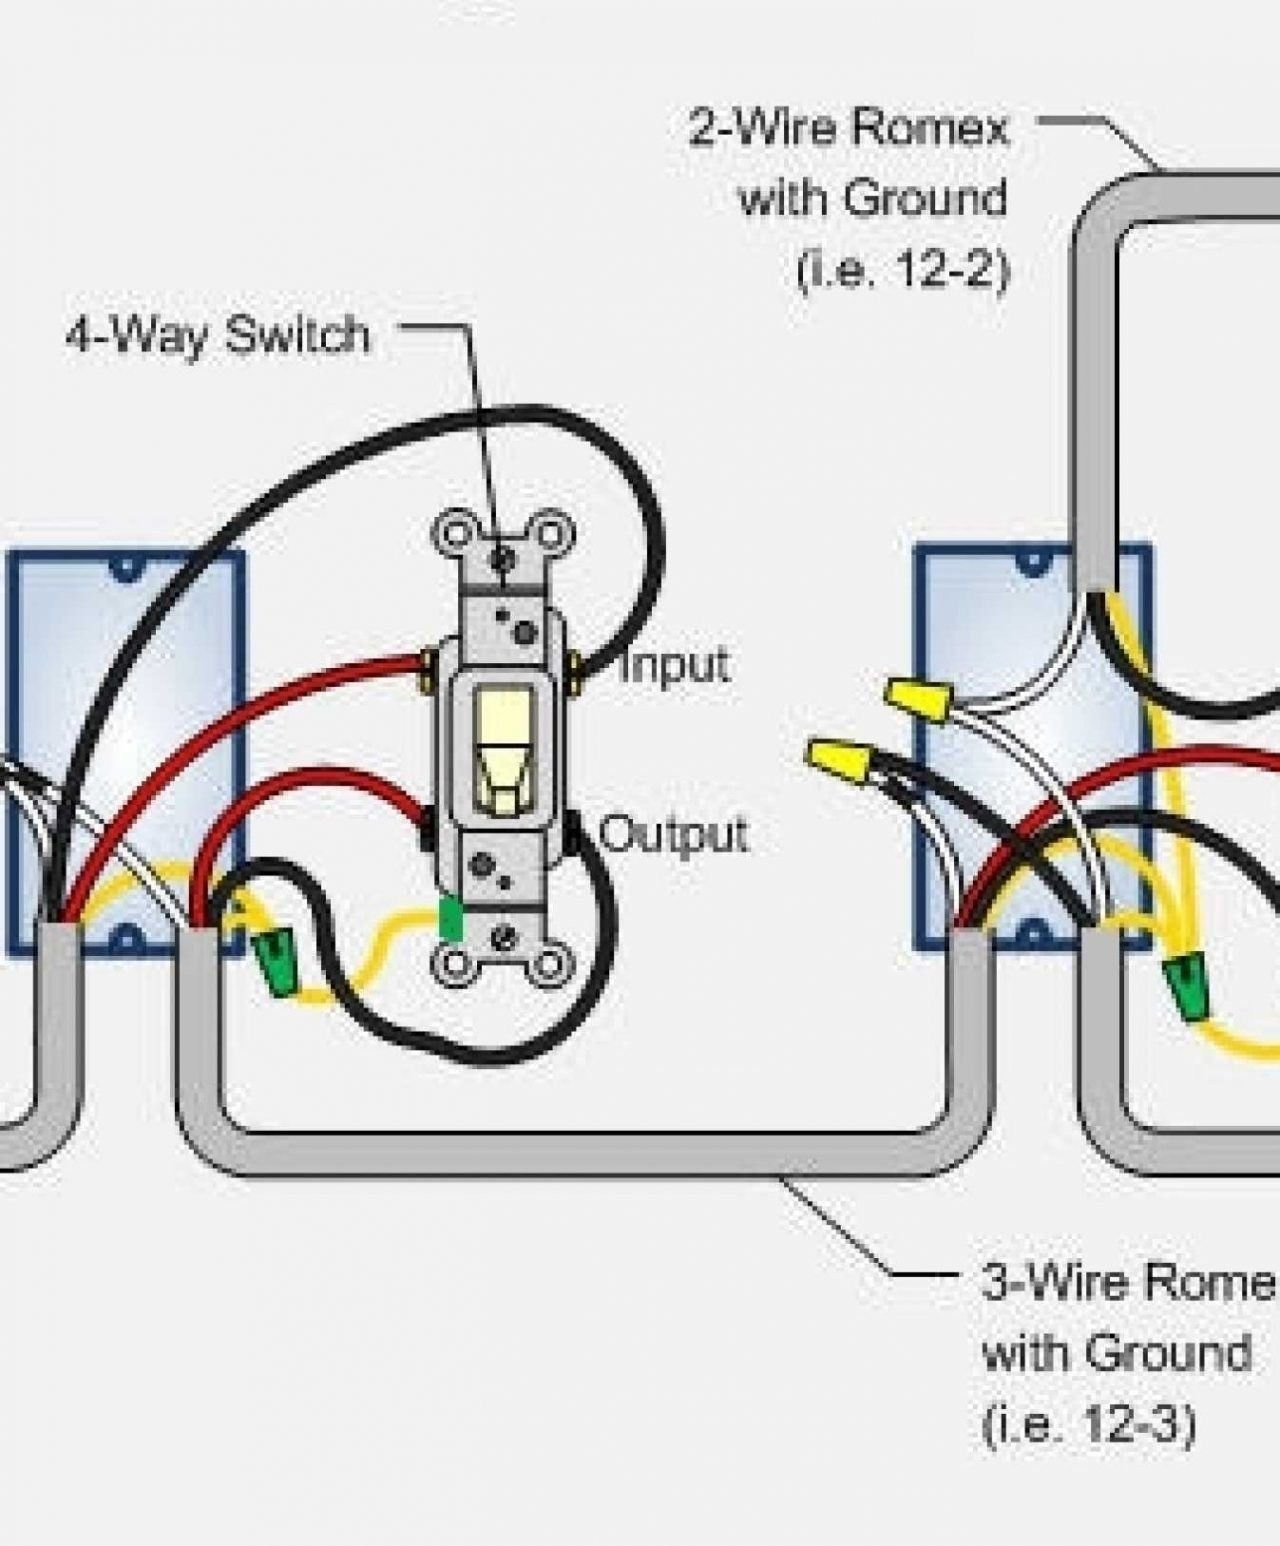 Elegant Light Switch Wiring Diagram Australia Hpm Diagrams Digramssample Diagramimages Wiringdiagrams Light Switch Wiring 3 Way Switch Wiring Outlet Wiring